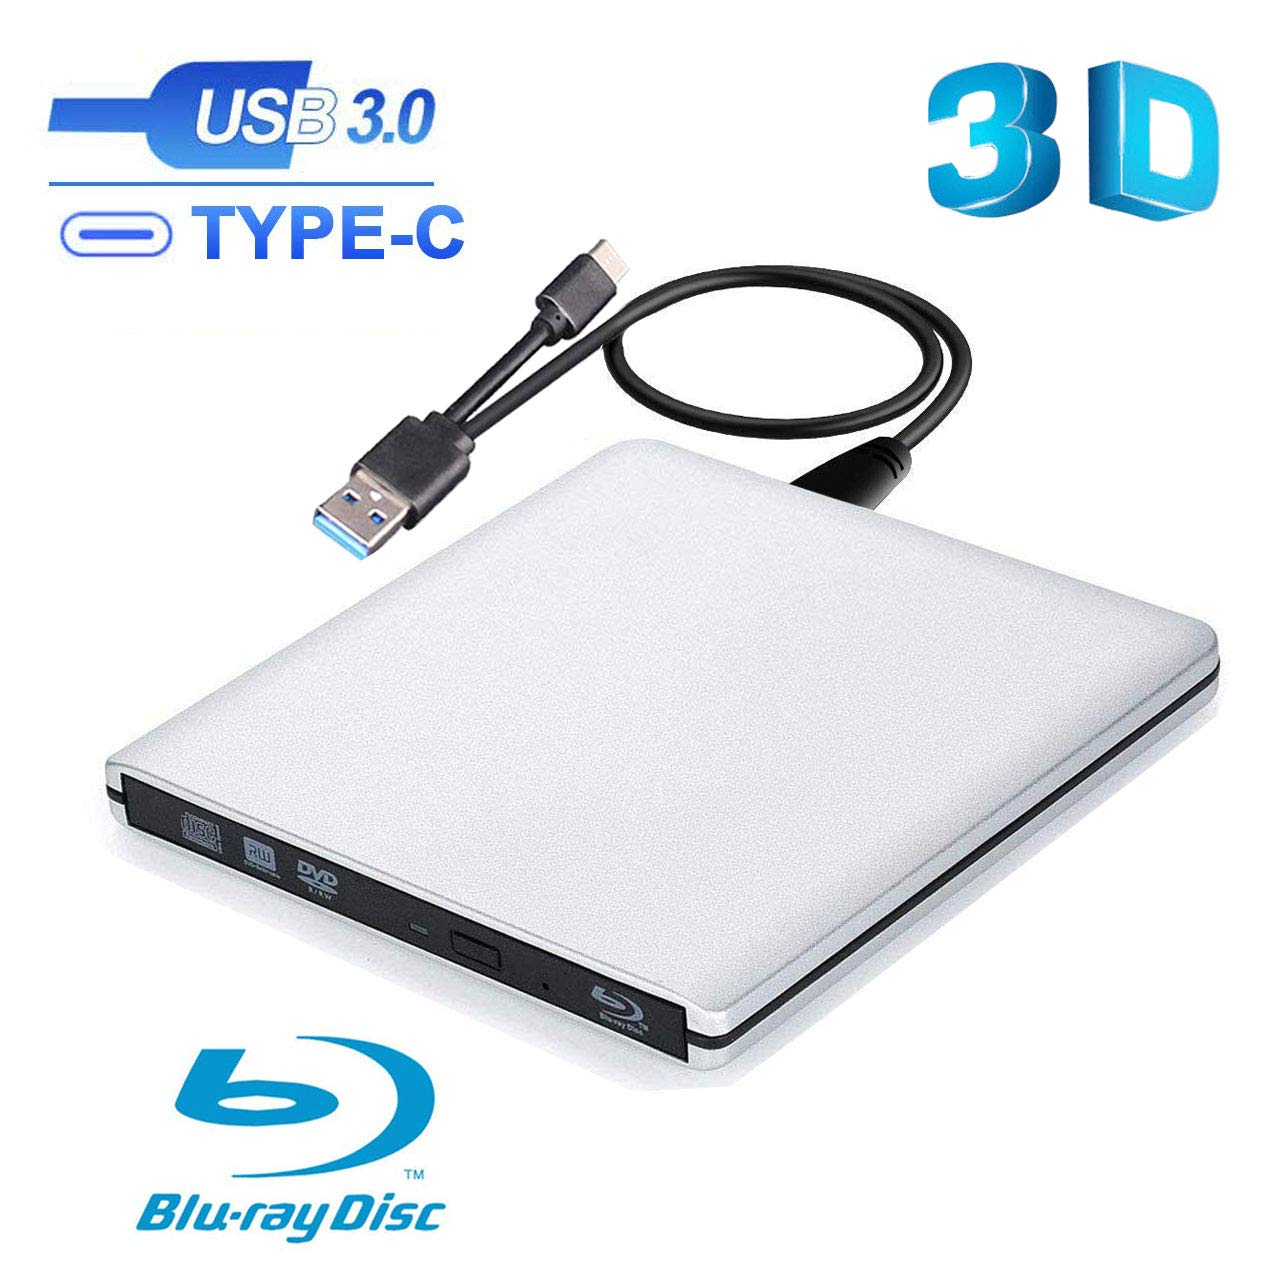 Ploveyy External Blu Ray DVD Drive , USB 3.0 & USB C Burner Slim Optical Portable Blu-ray CD DVD Reader Writer RW Player for Laptop Desktop MacBook OS Windows 7 8 10 PC iMac Laptop (Silver) by Ploveyy